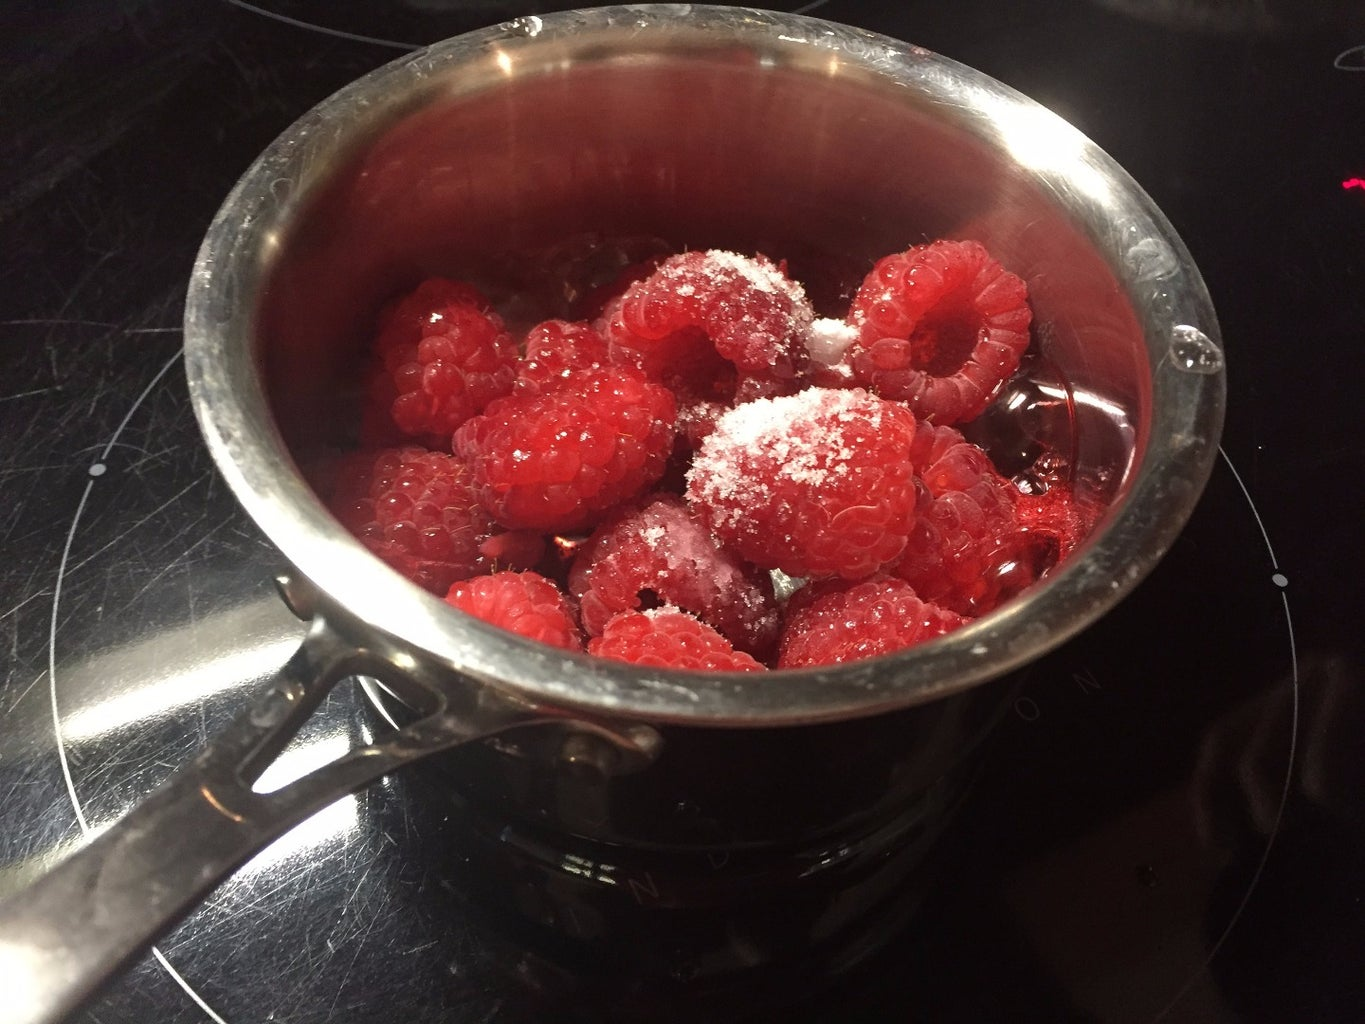 Make the Raspberry Coulis